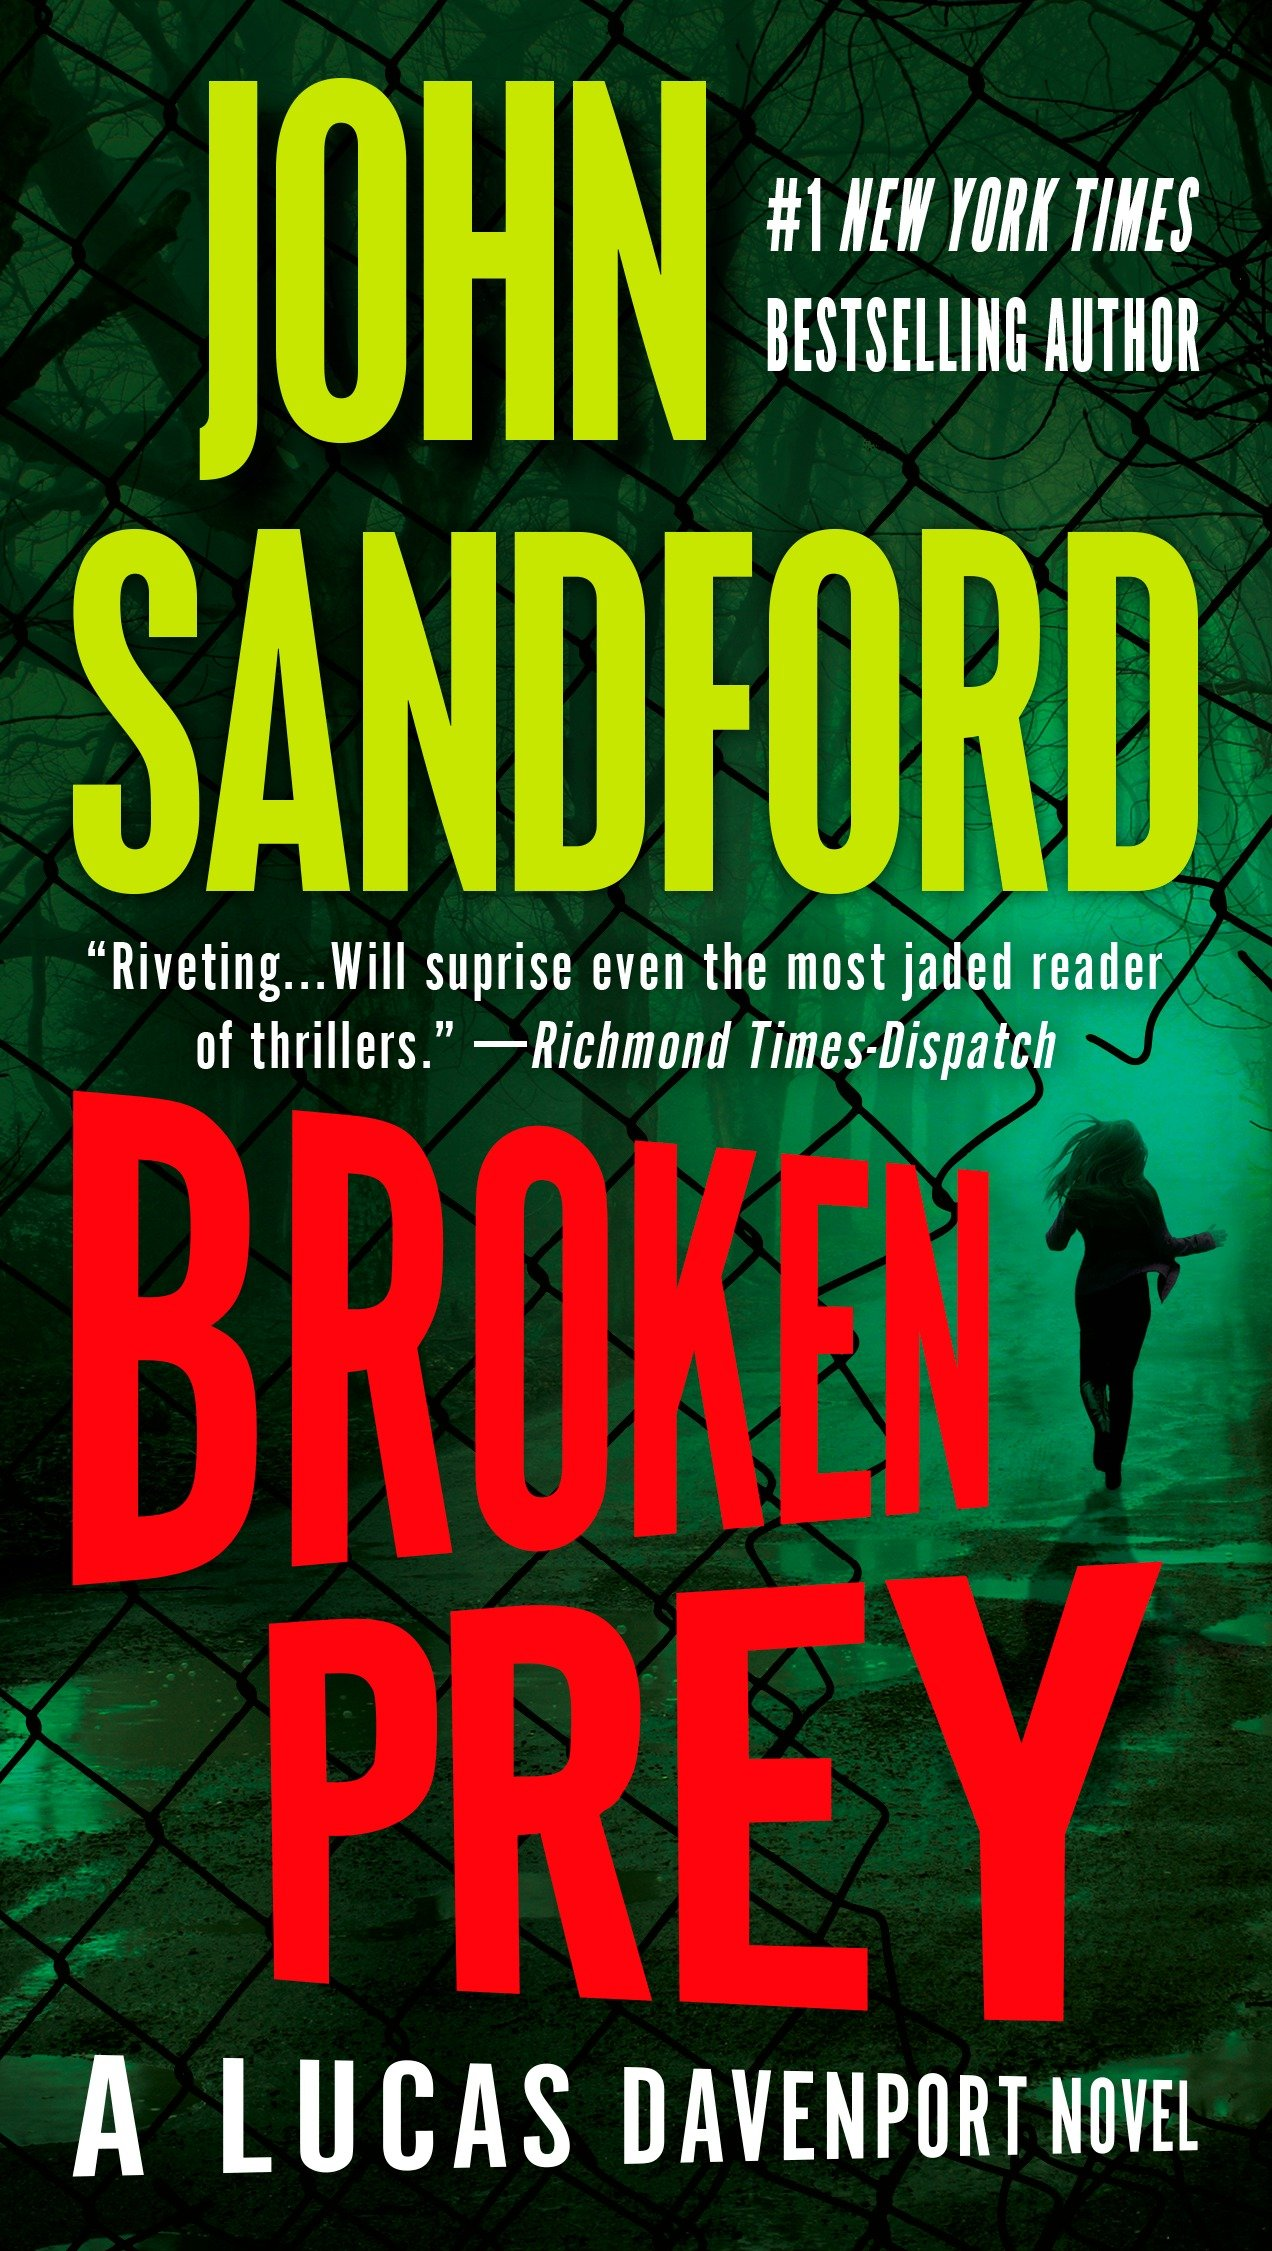 Broken prey cover image